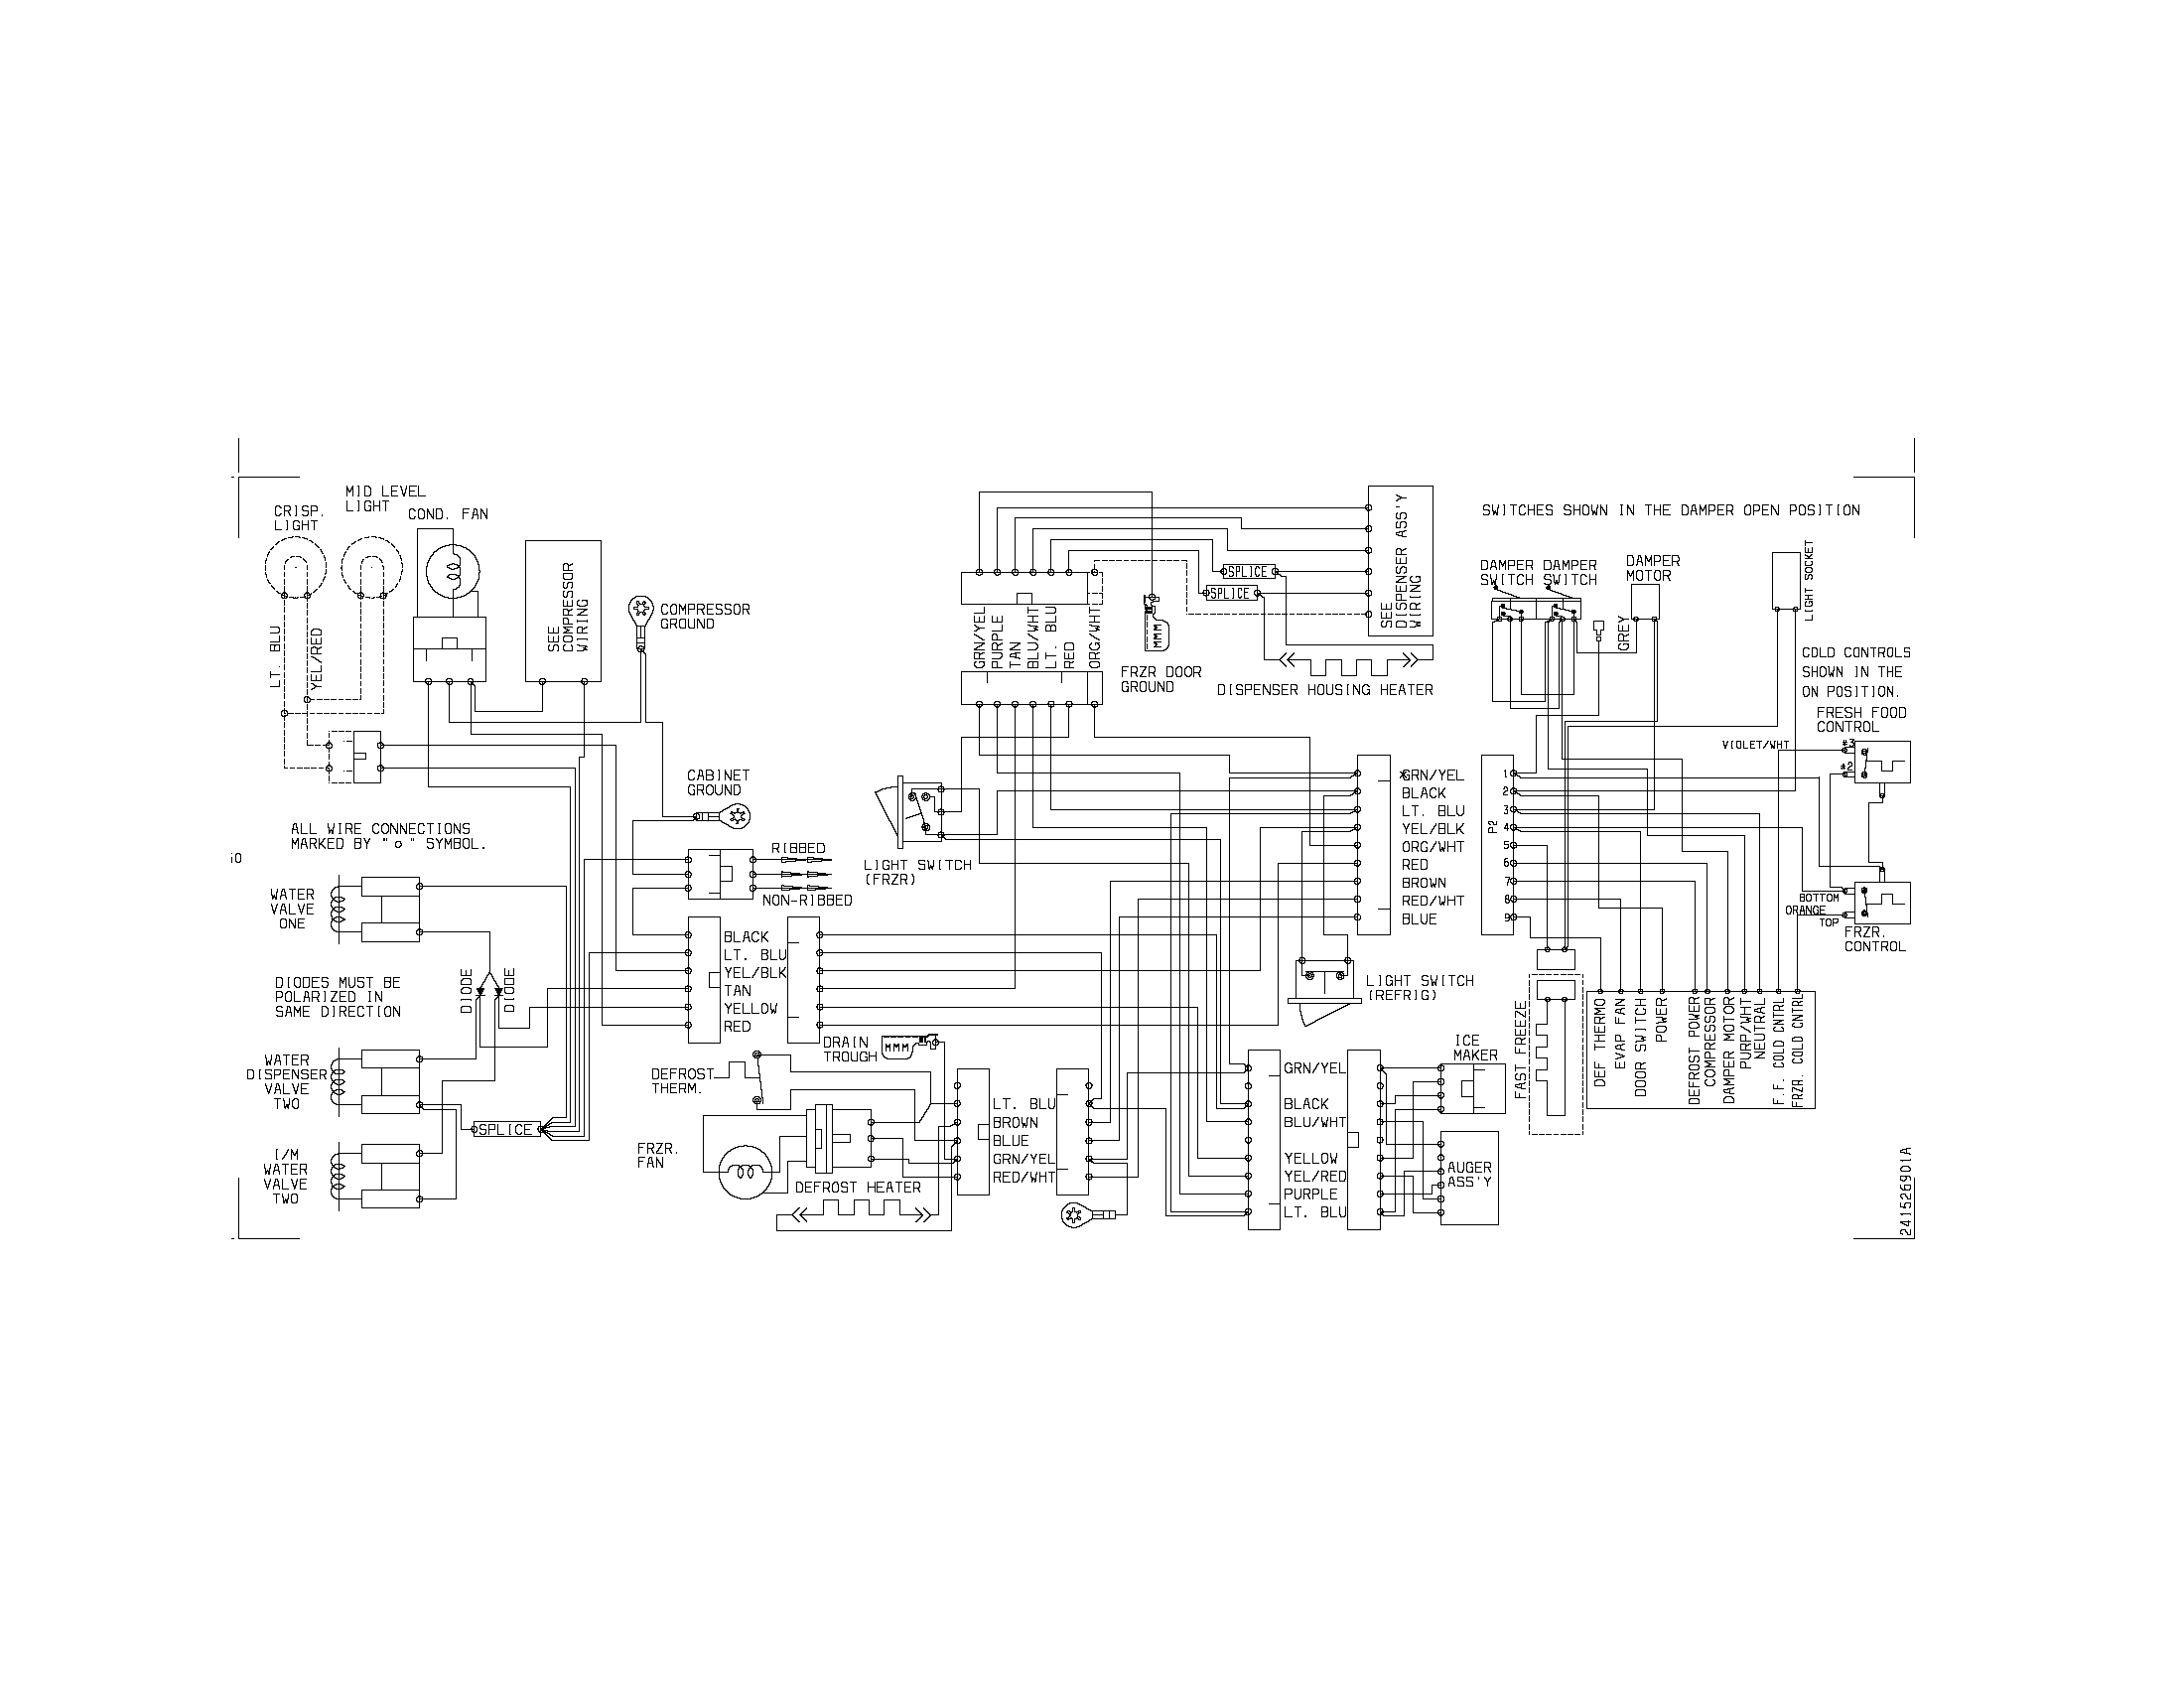 10259 Commercial Cooler Control Panel Wiring Diagram